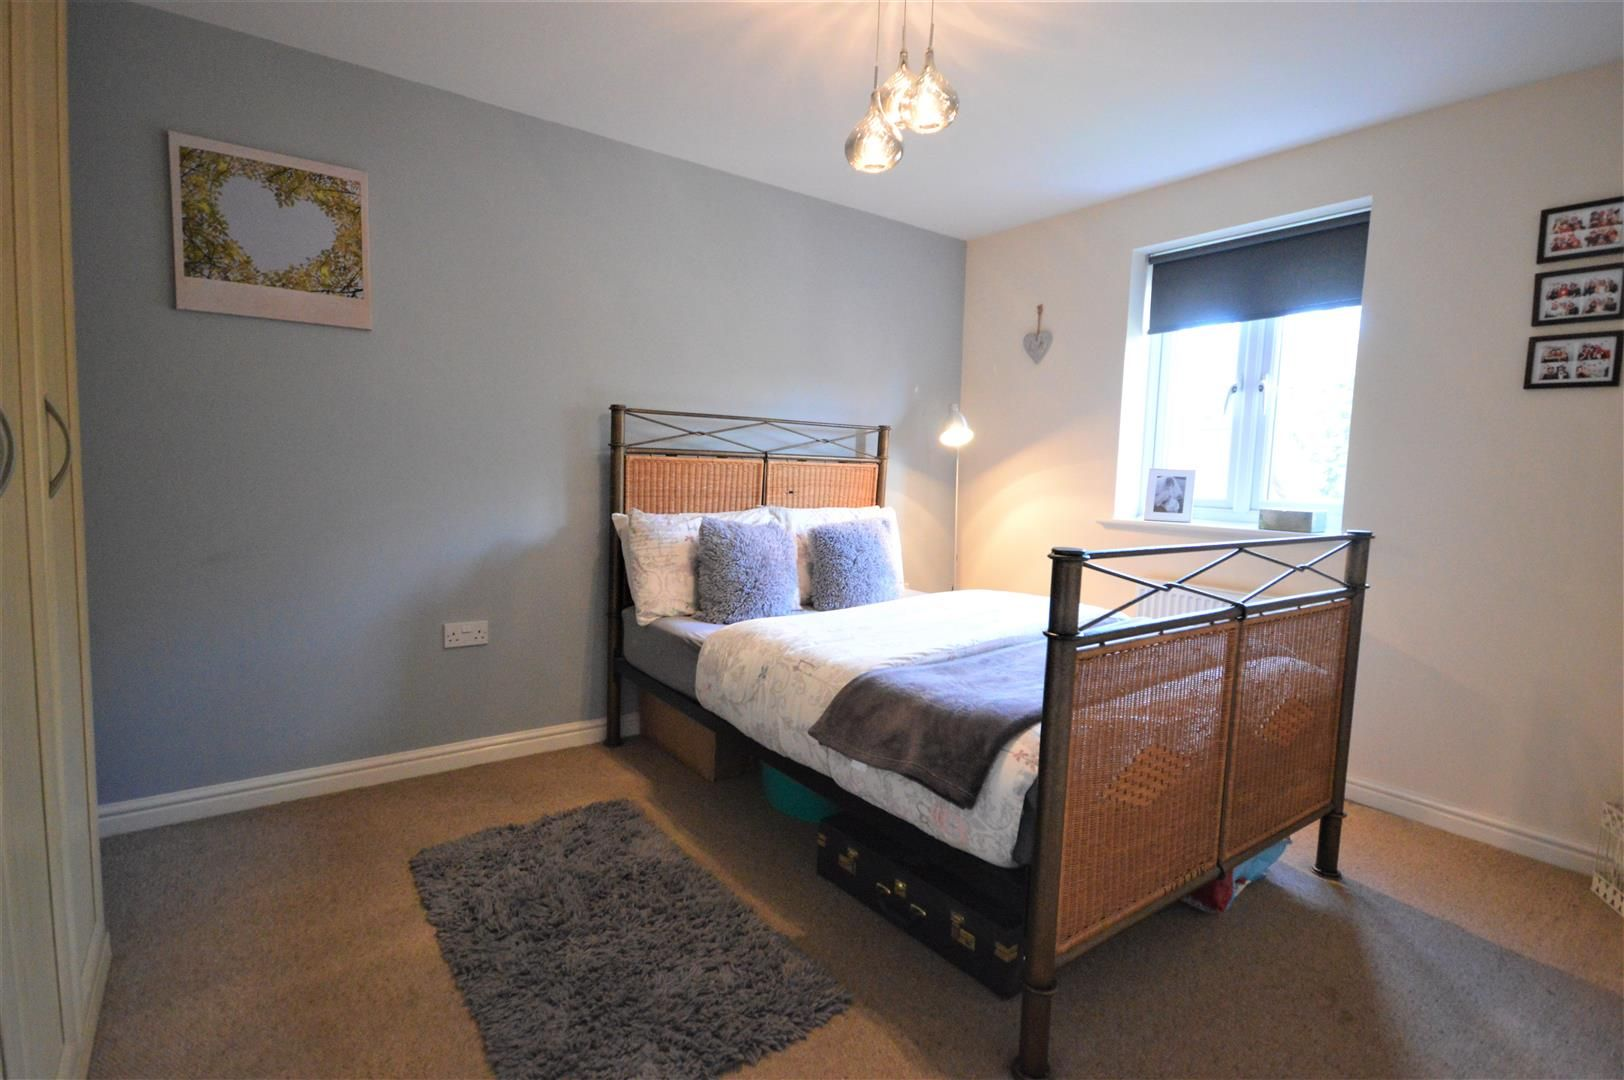 4 bed semi-detached for sale in Leominster 9